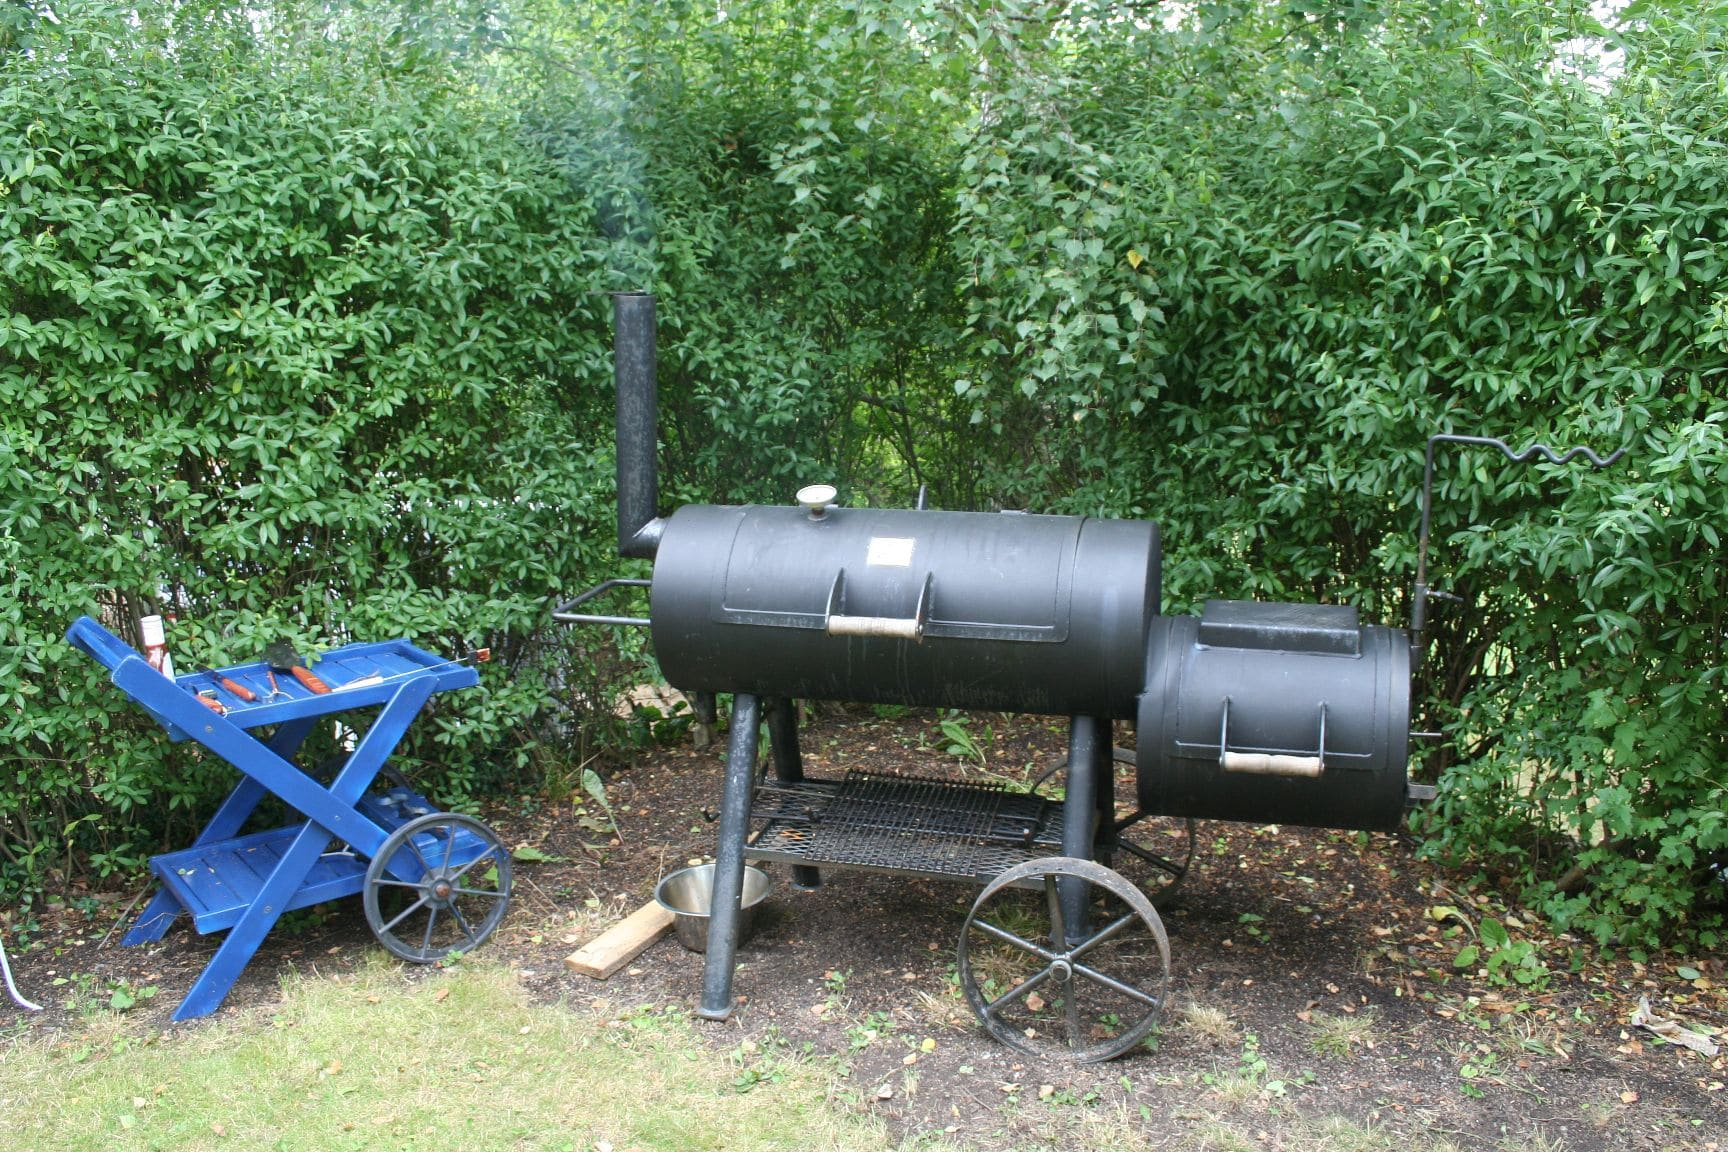 best type of grill, gas vs charcoal